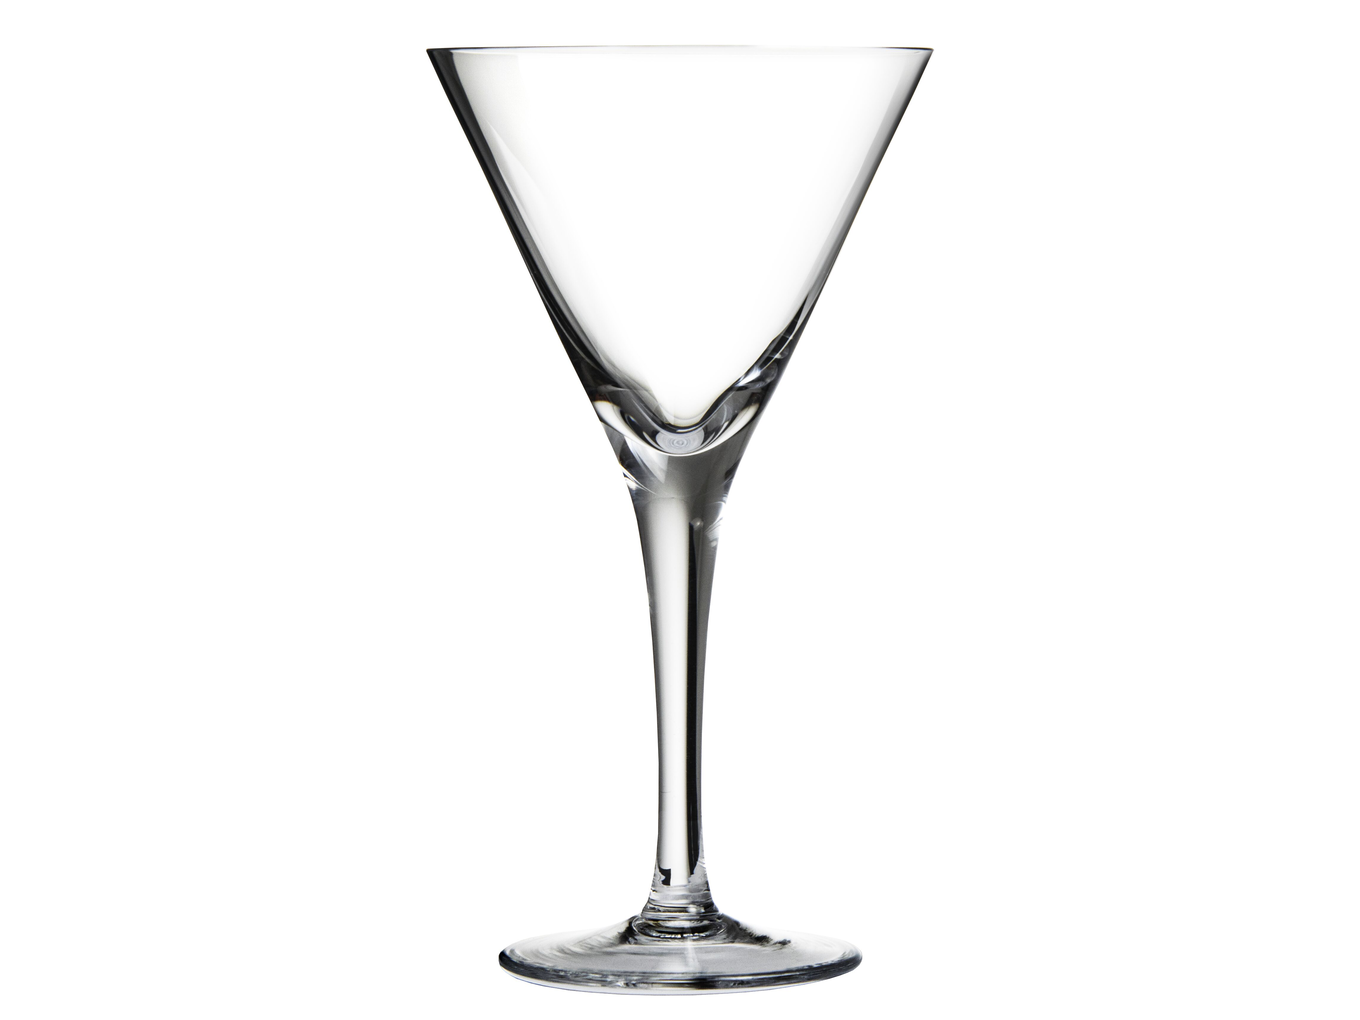 Urban Bar Verdot Mini Martini Glass 1.5oz / 4.5cl image 1